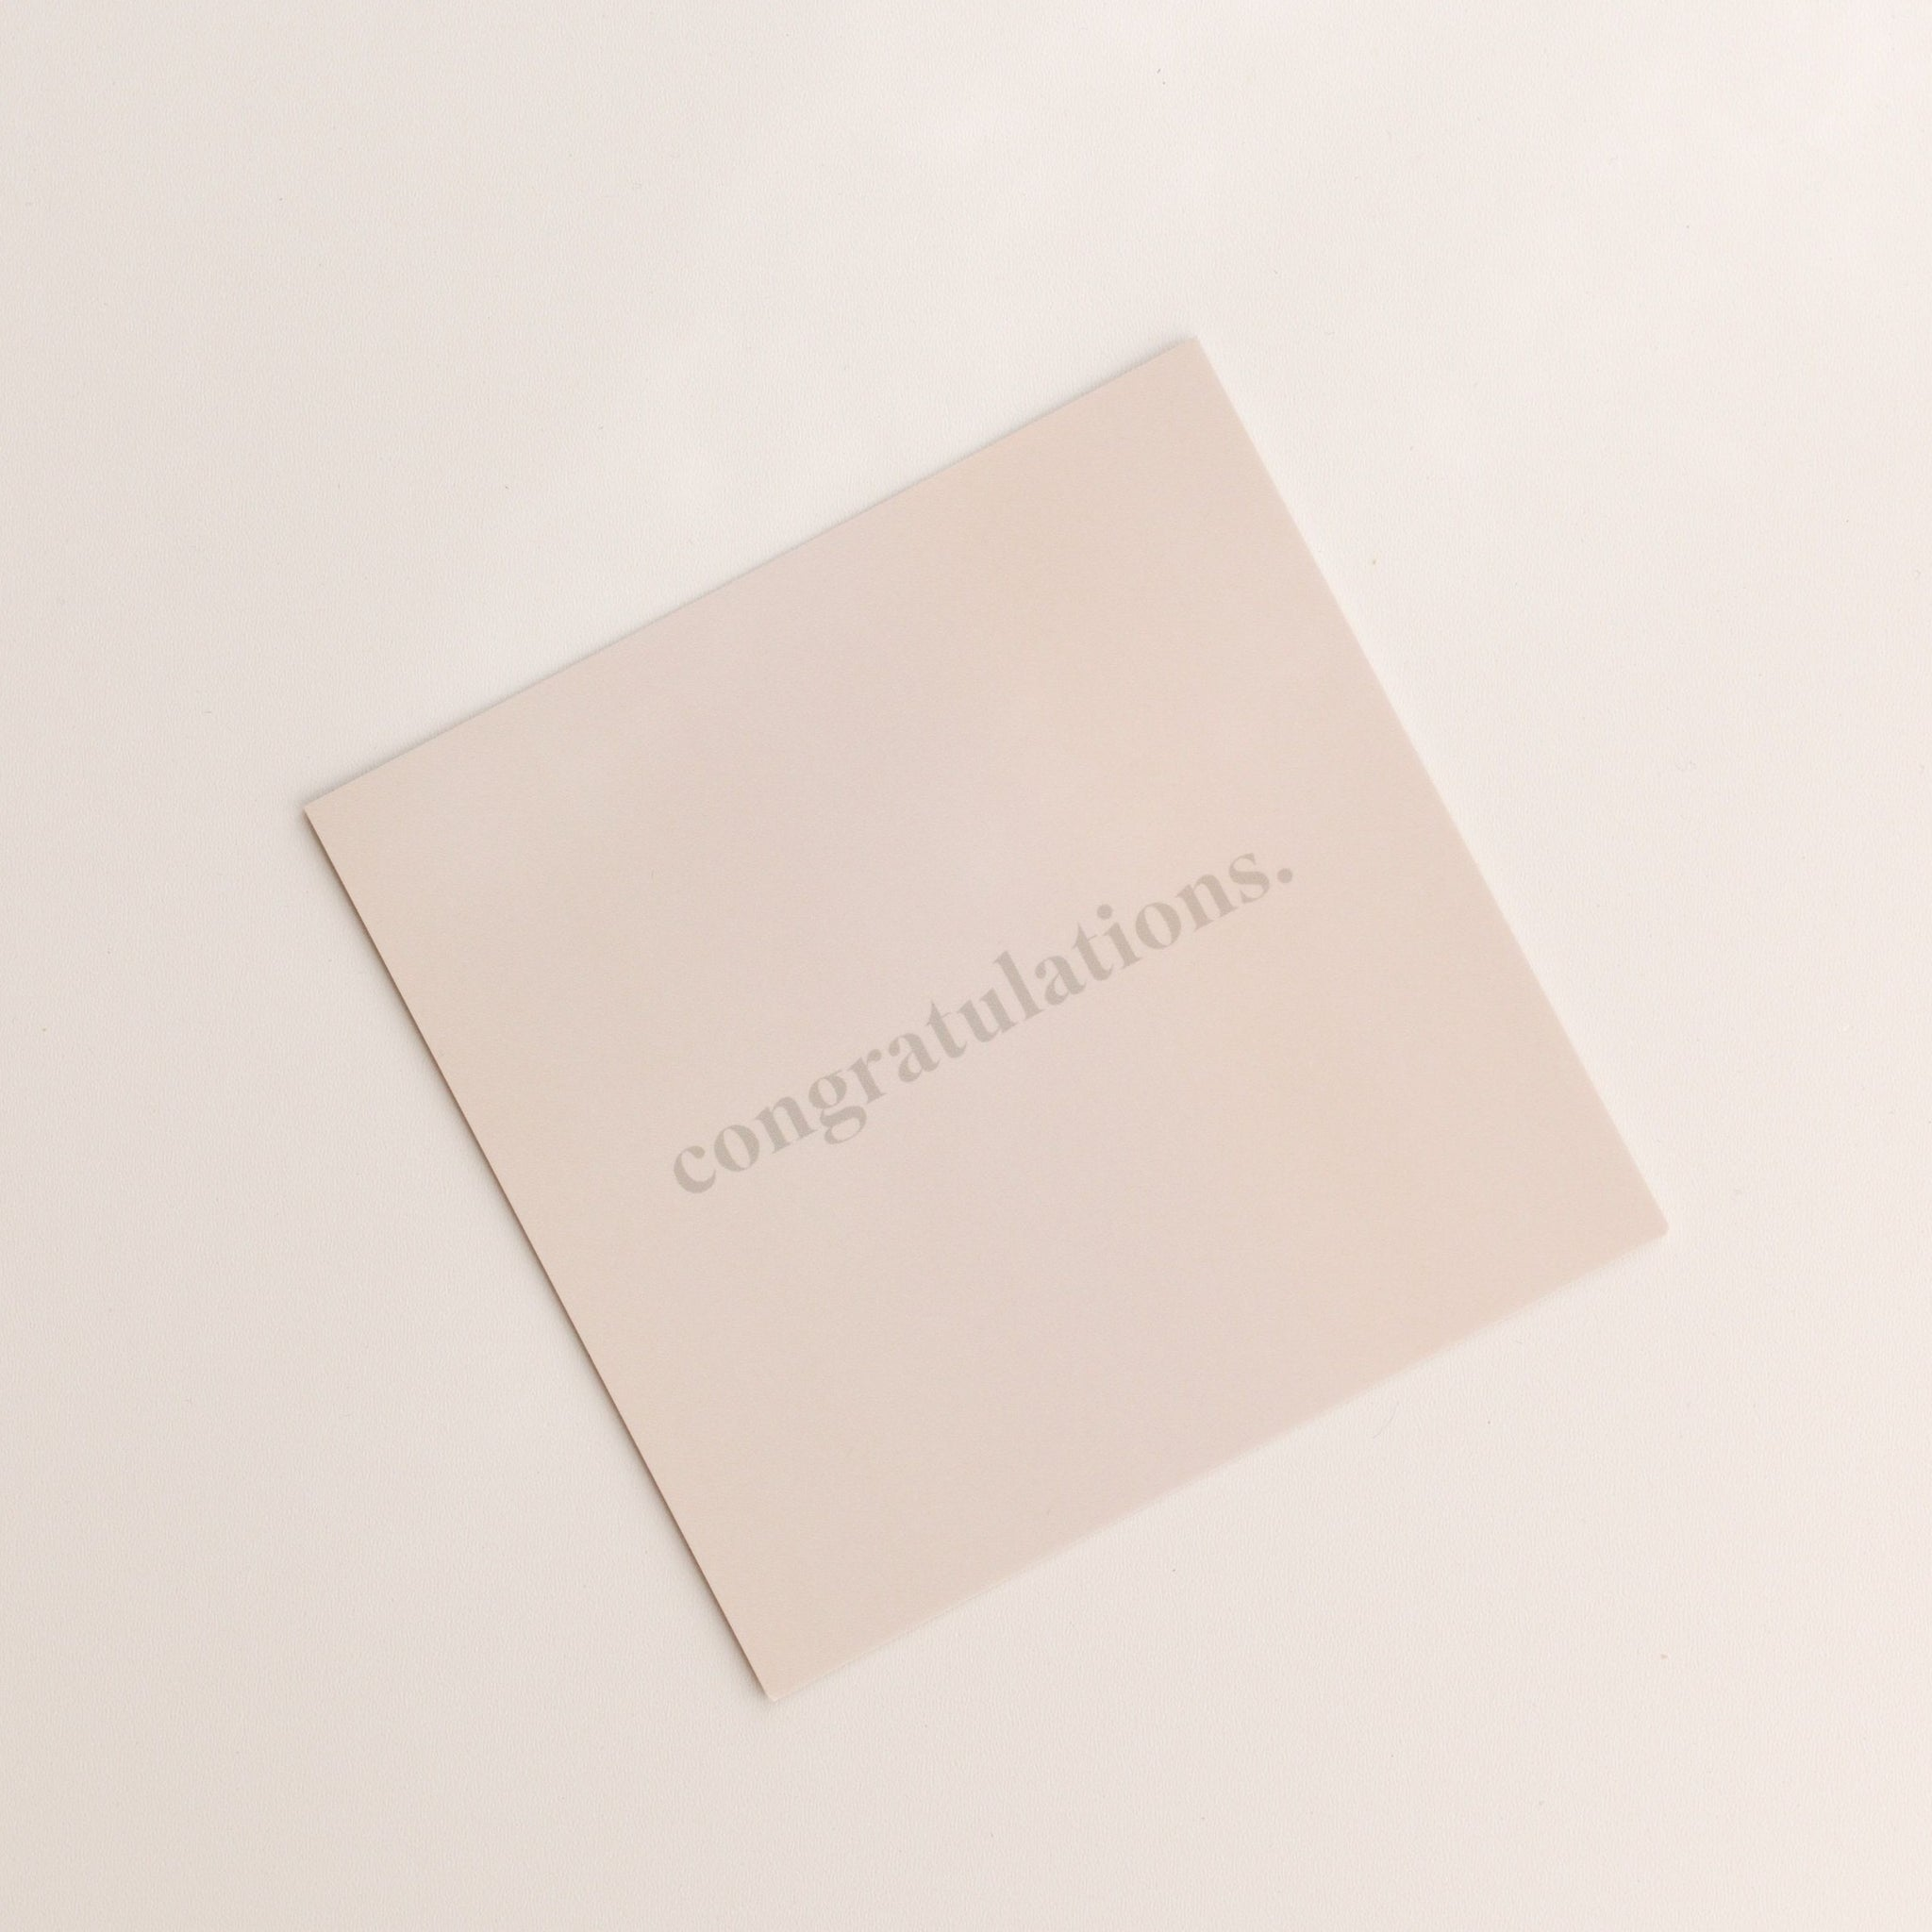 congratulations | gift card